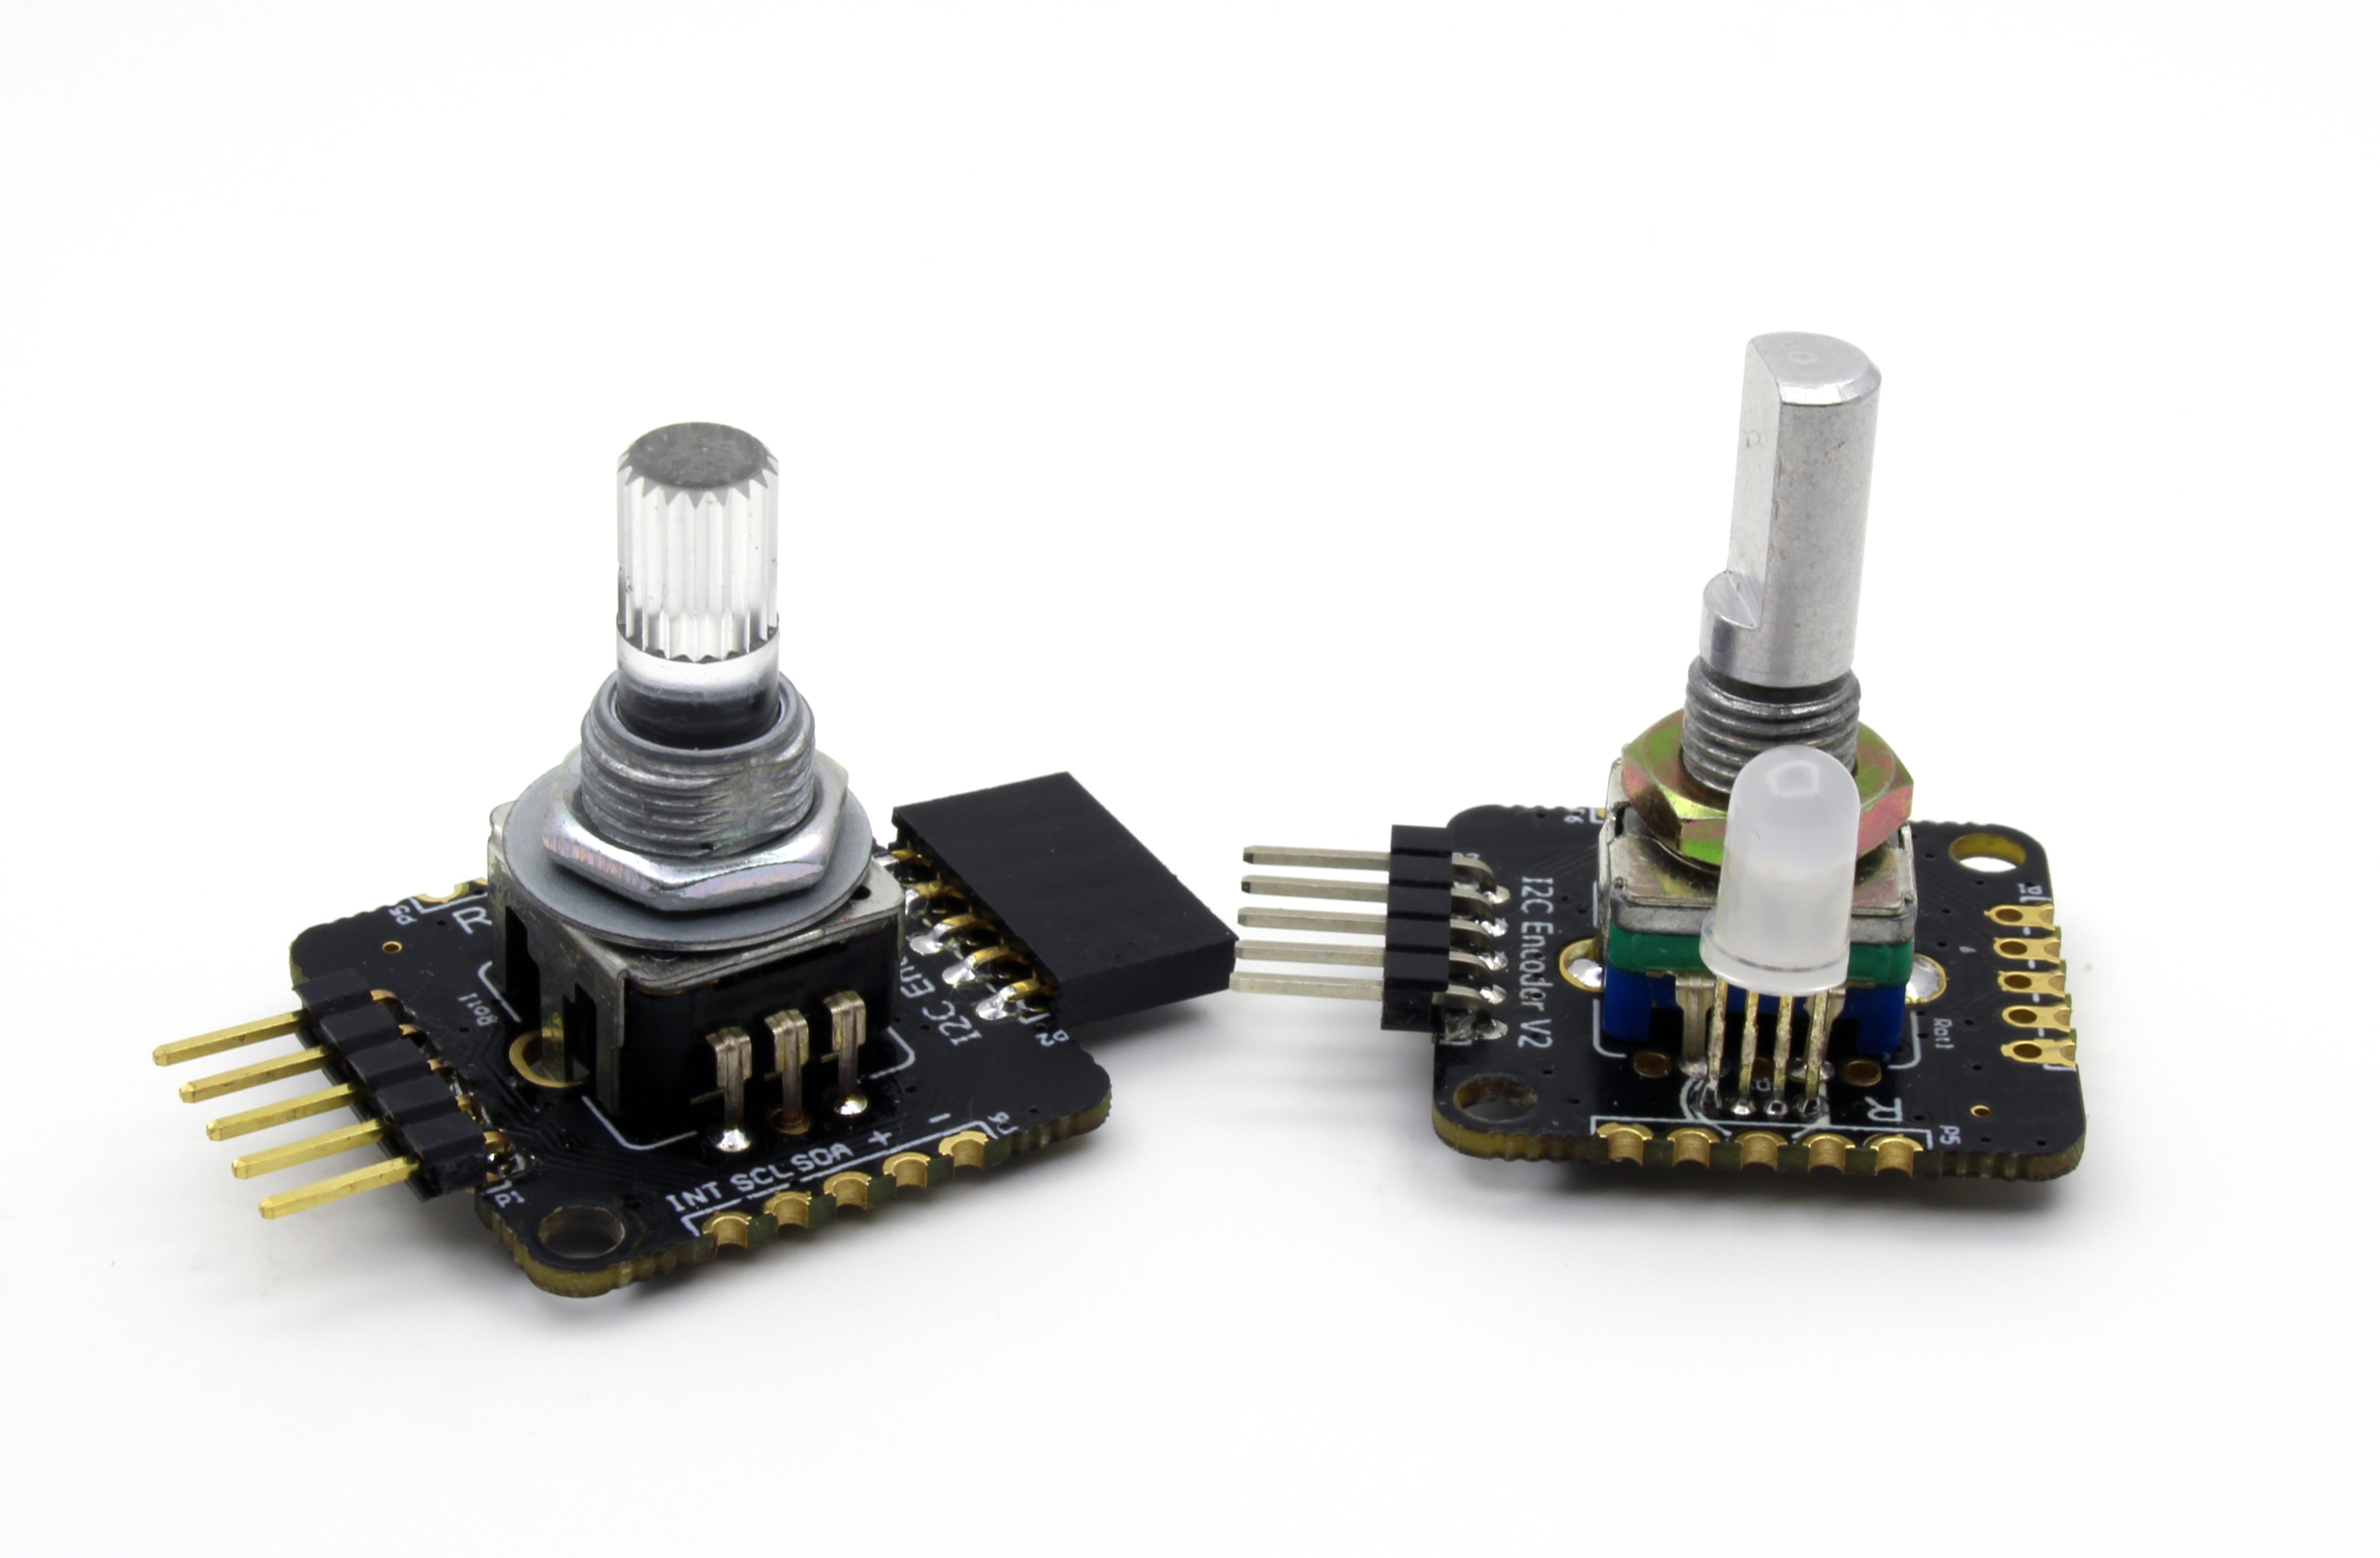 I2c Encoder V2 Tri Color Led Circuit With There Are Also 3 Configurable Gpios Organized The Same Footprint Of A Rgb They Called Gp1 Gp2 And Gp3